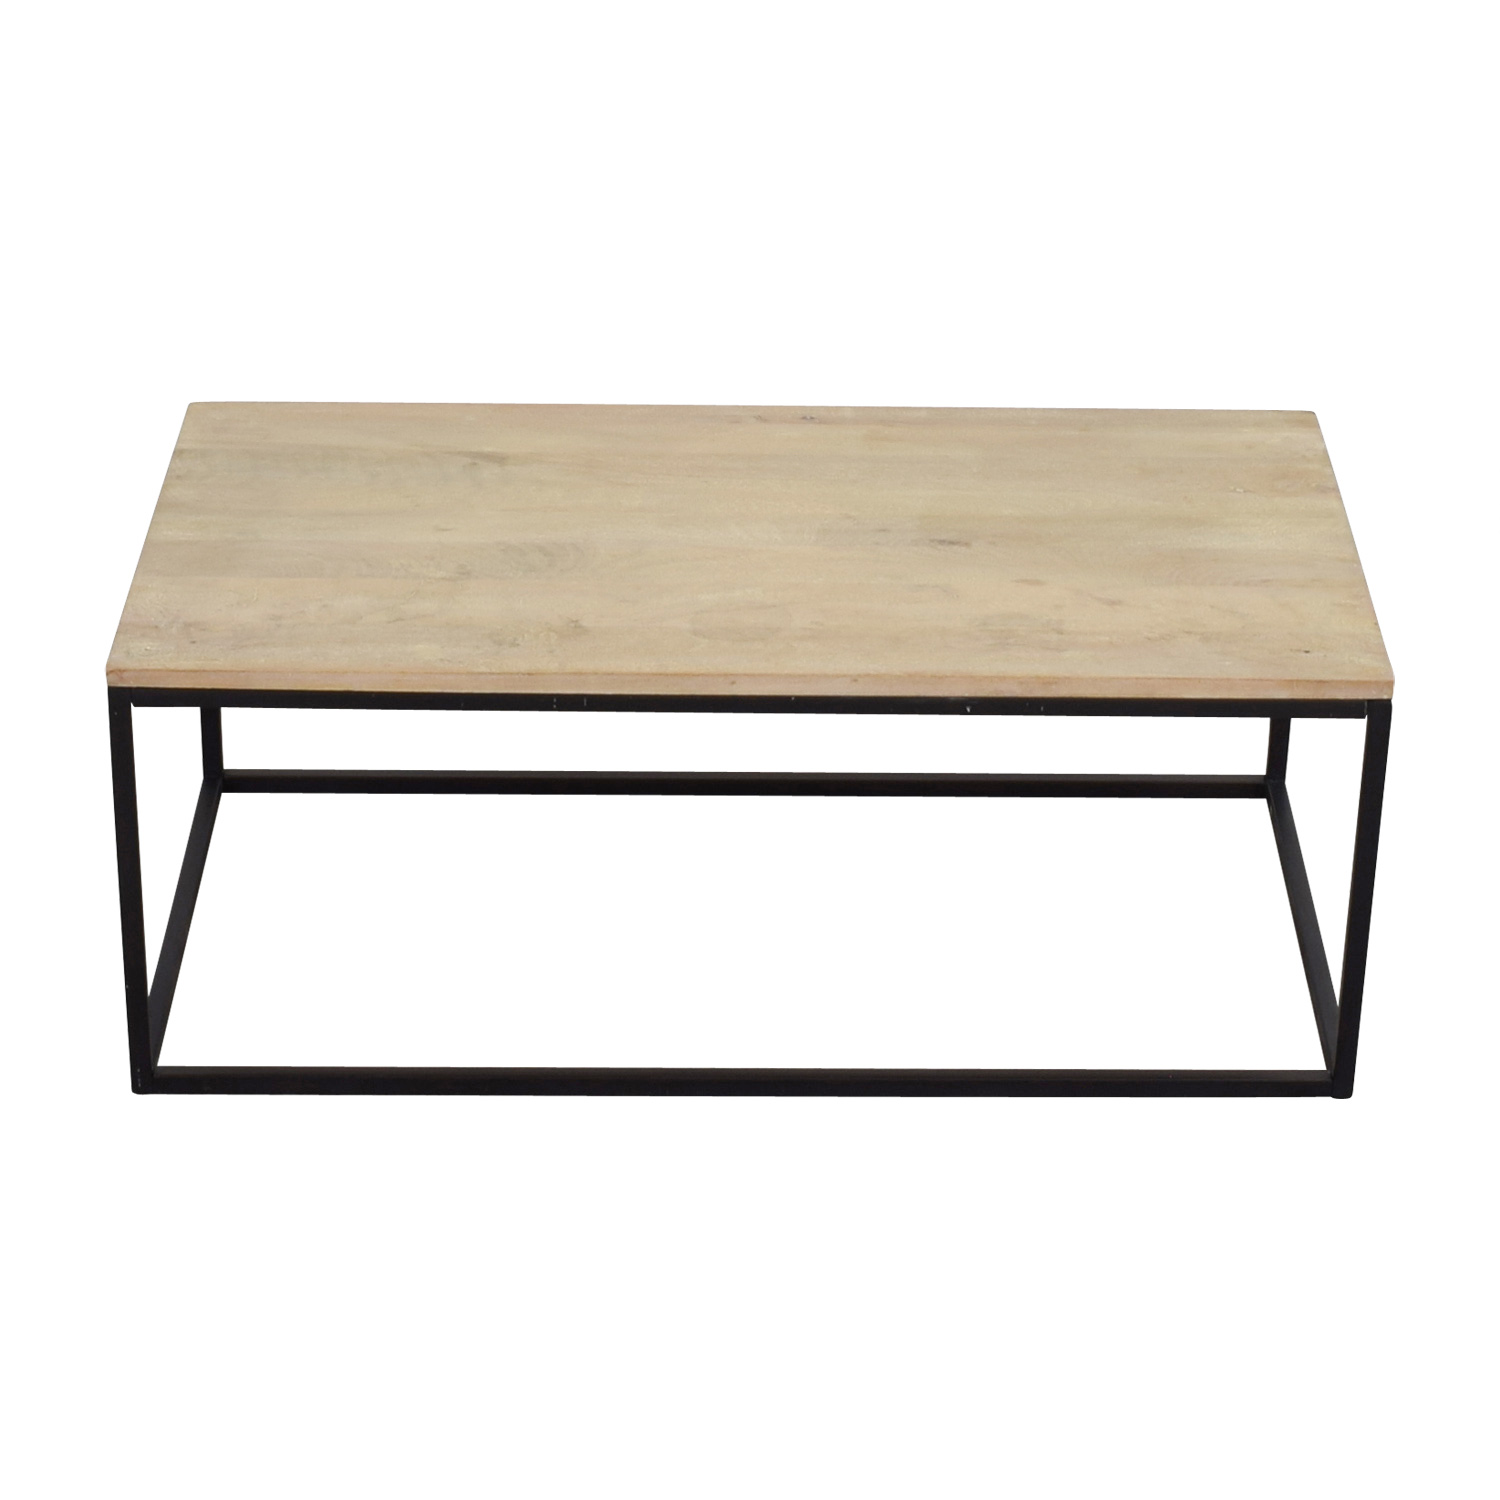 Crate & Barrel Crate & Barrel Natural Wood Coffee Table used